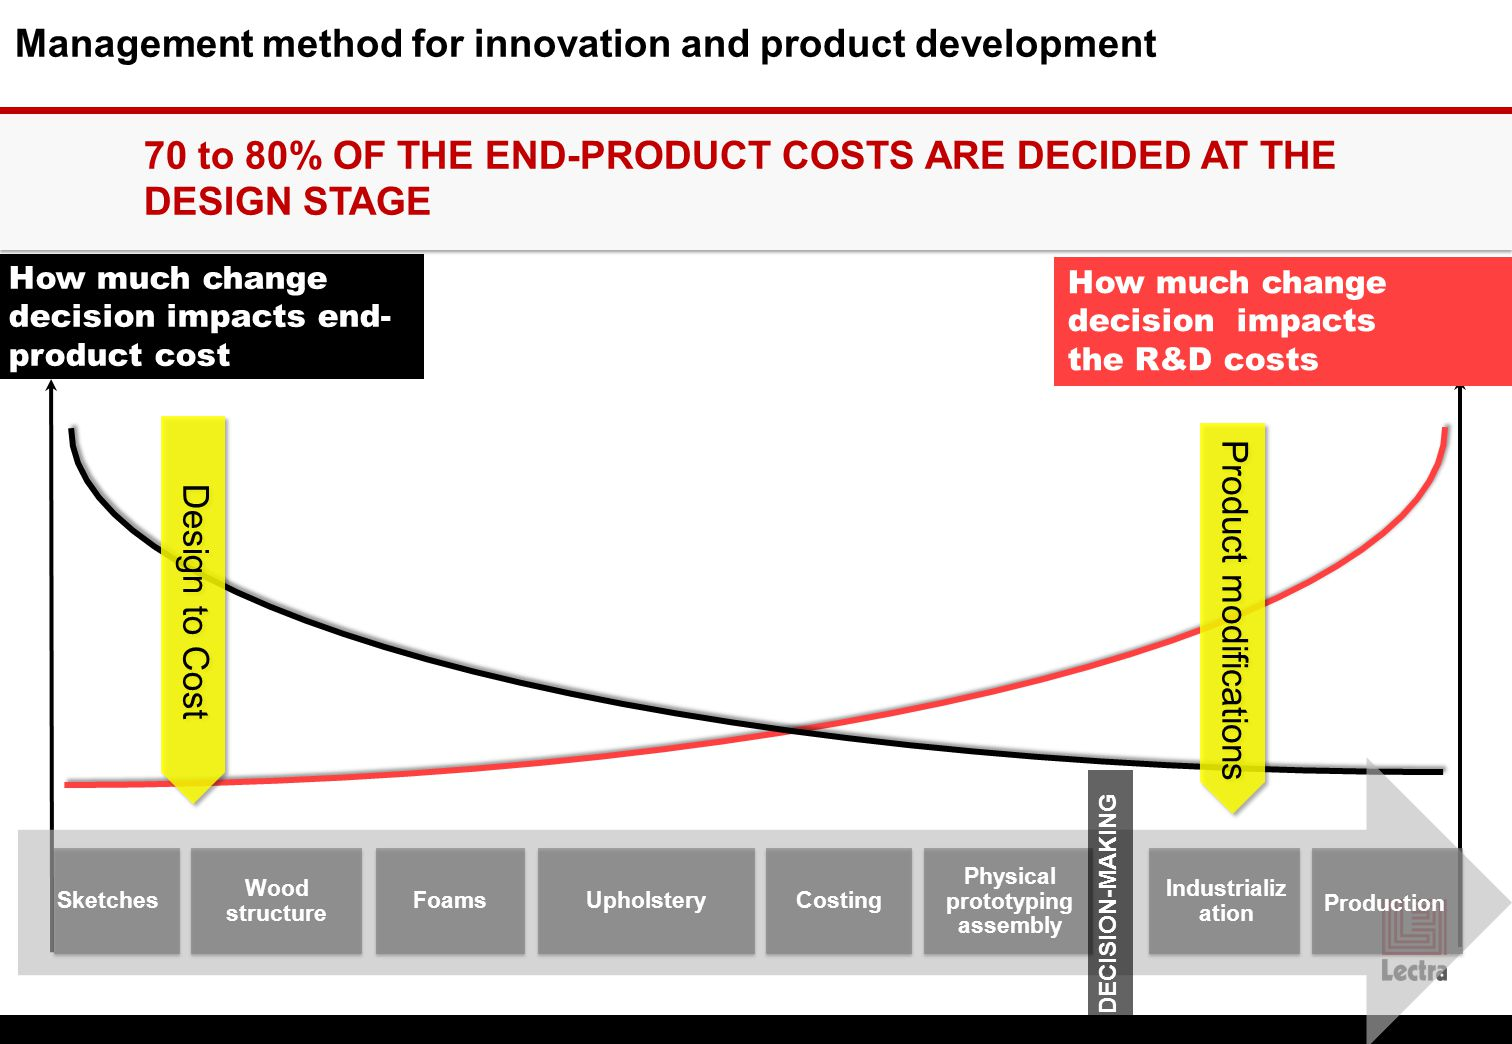 How much change decision impacts the R&D costs How much change decision impacts end- product cost Sketches Wood structure FoamsUpholsteryCosting Physical prototyping assembly Industrializ ation DECISION-MAKING 70 to 80% OF THE END-PRODUCT COSTS ARE DECIDED AT THE DESIGN STAGE Management method for innovation and product development Product modifications Production Design to Cost